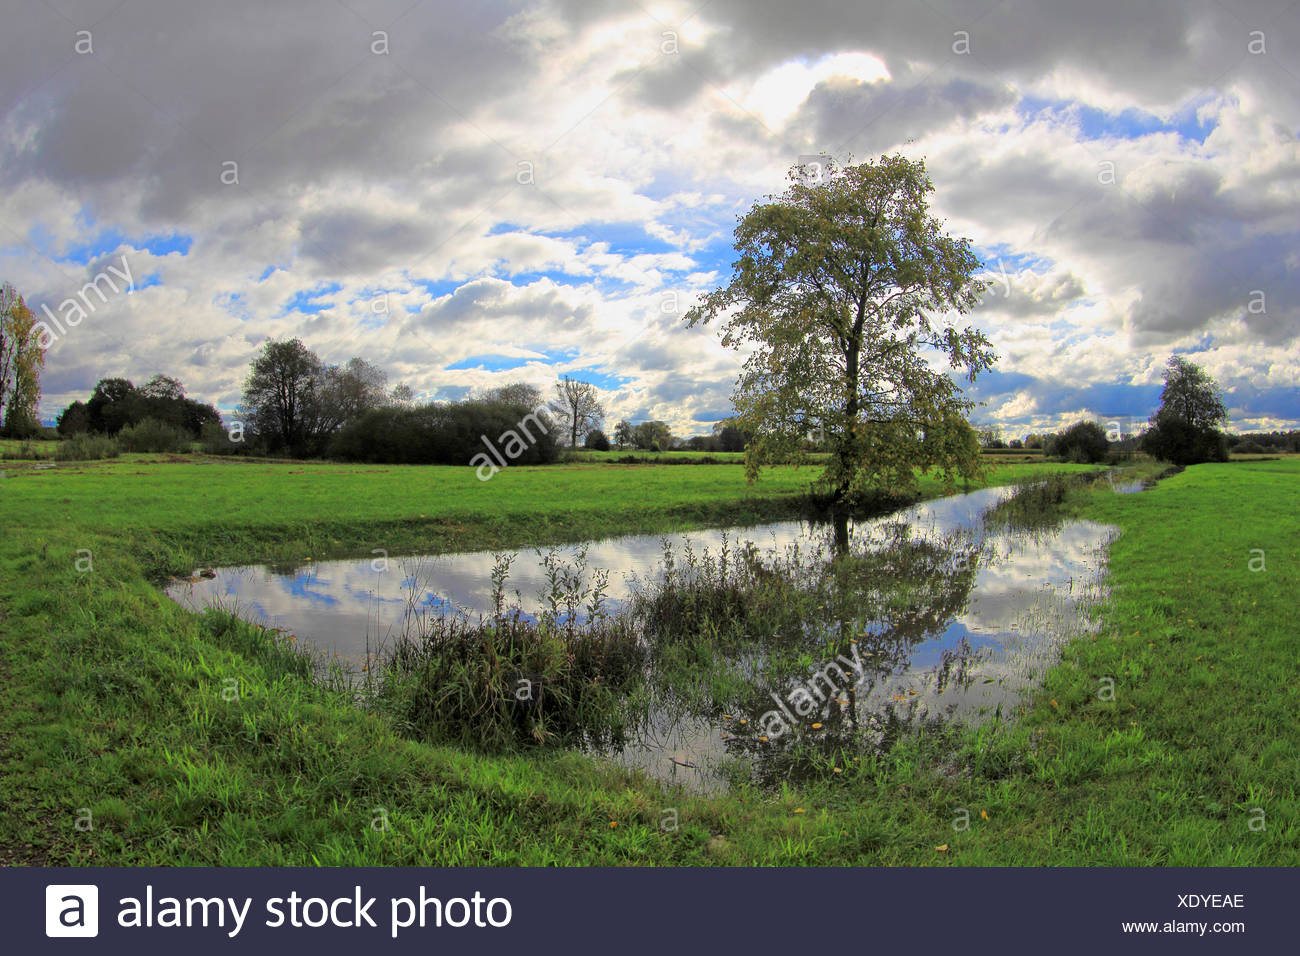 pastureland with tree, creek , fields and cloudy sky, Germany, Baden-Wuerttemberg, Ortenau Stock Photo